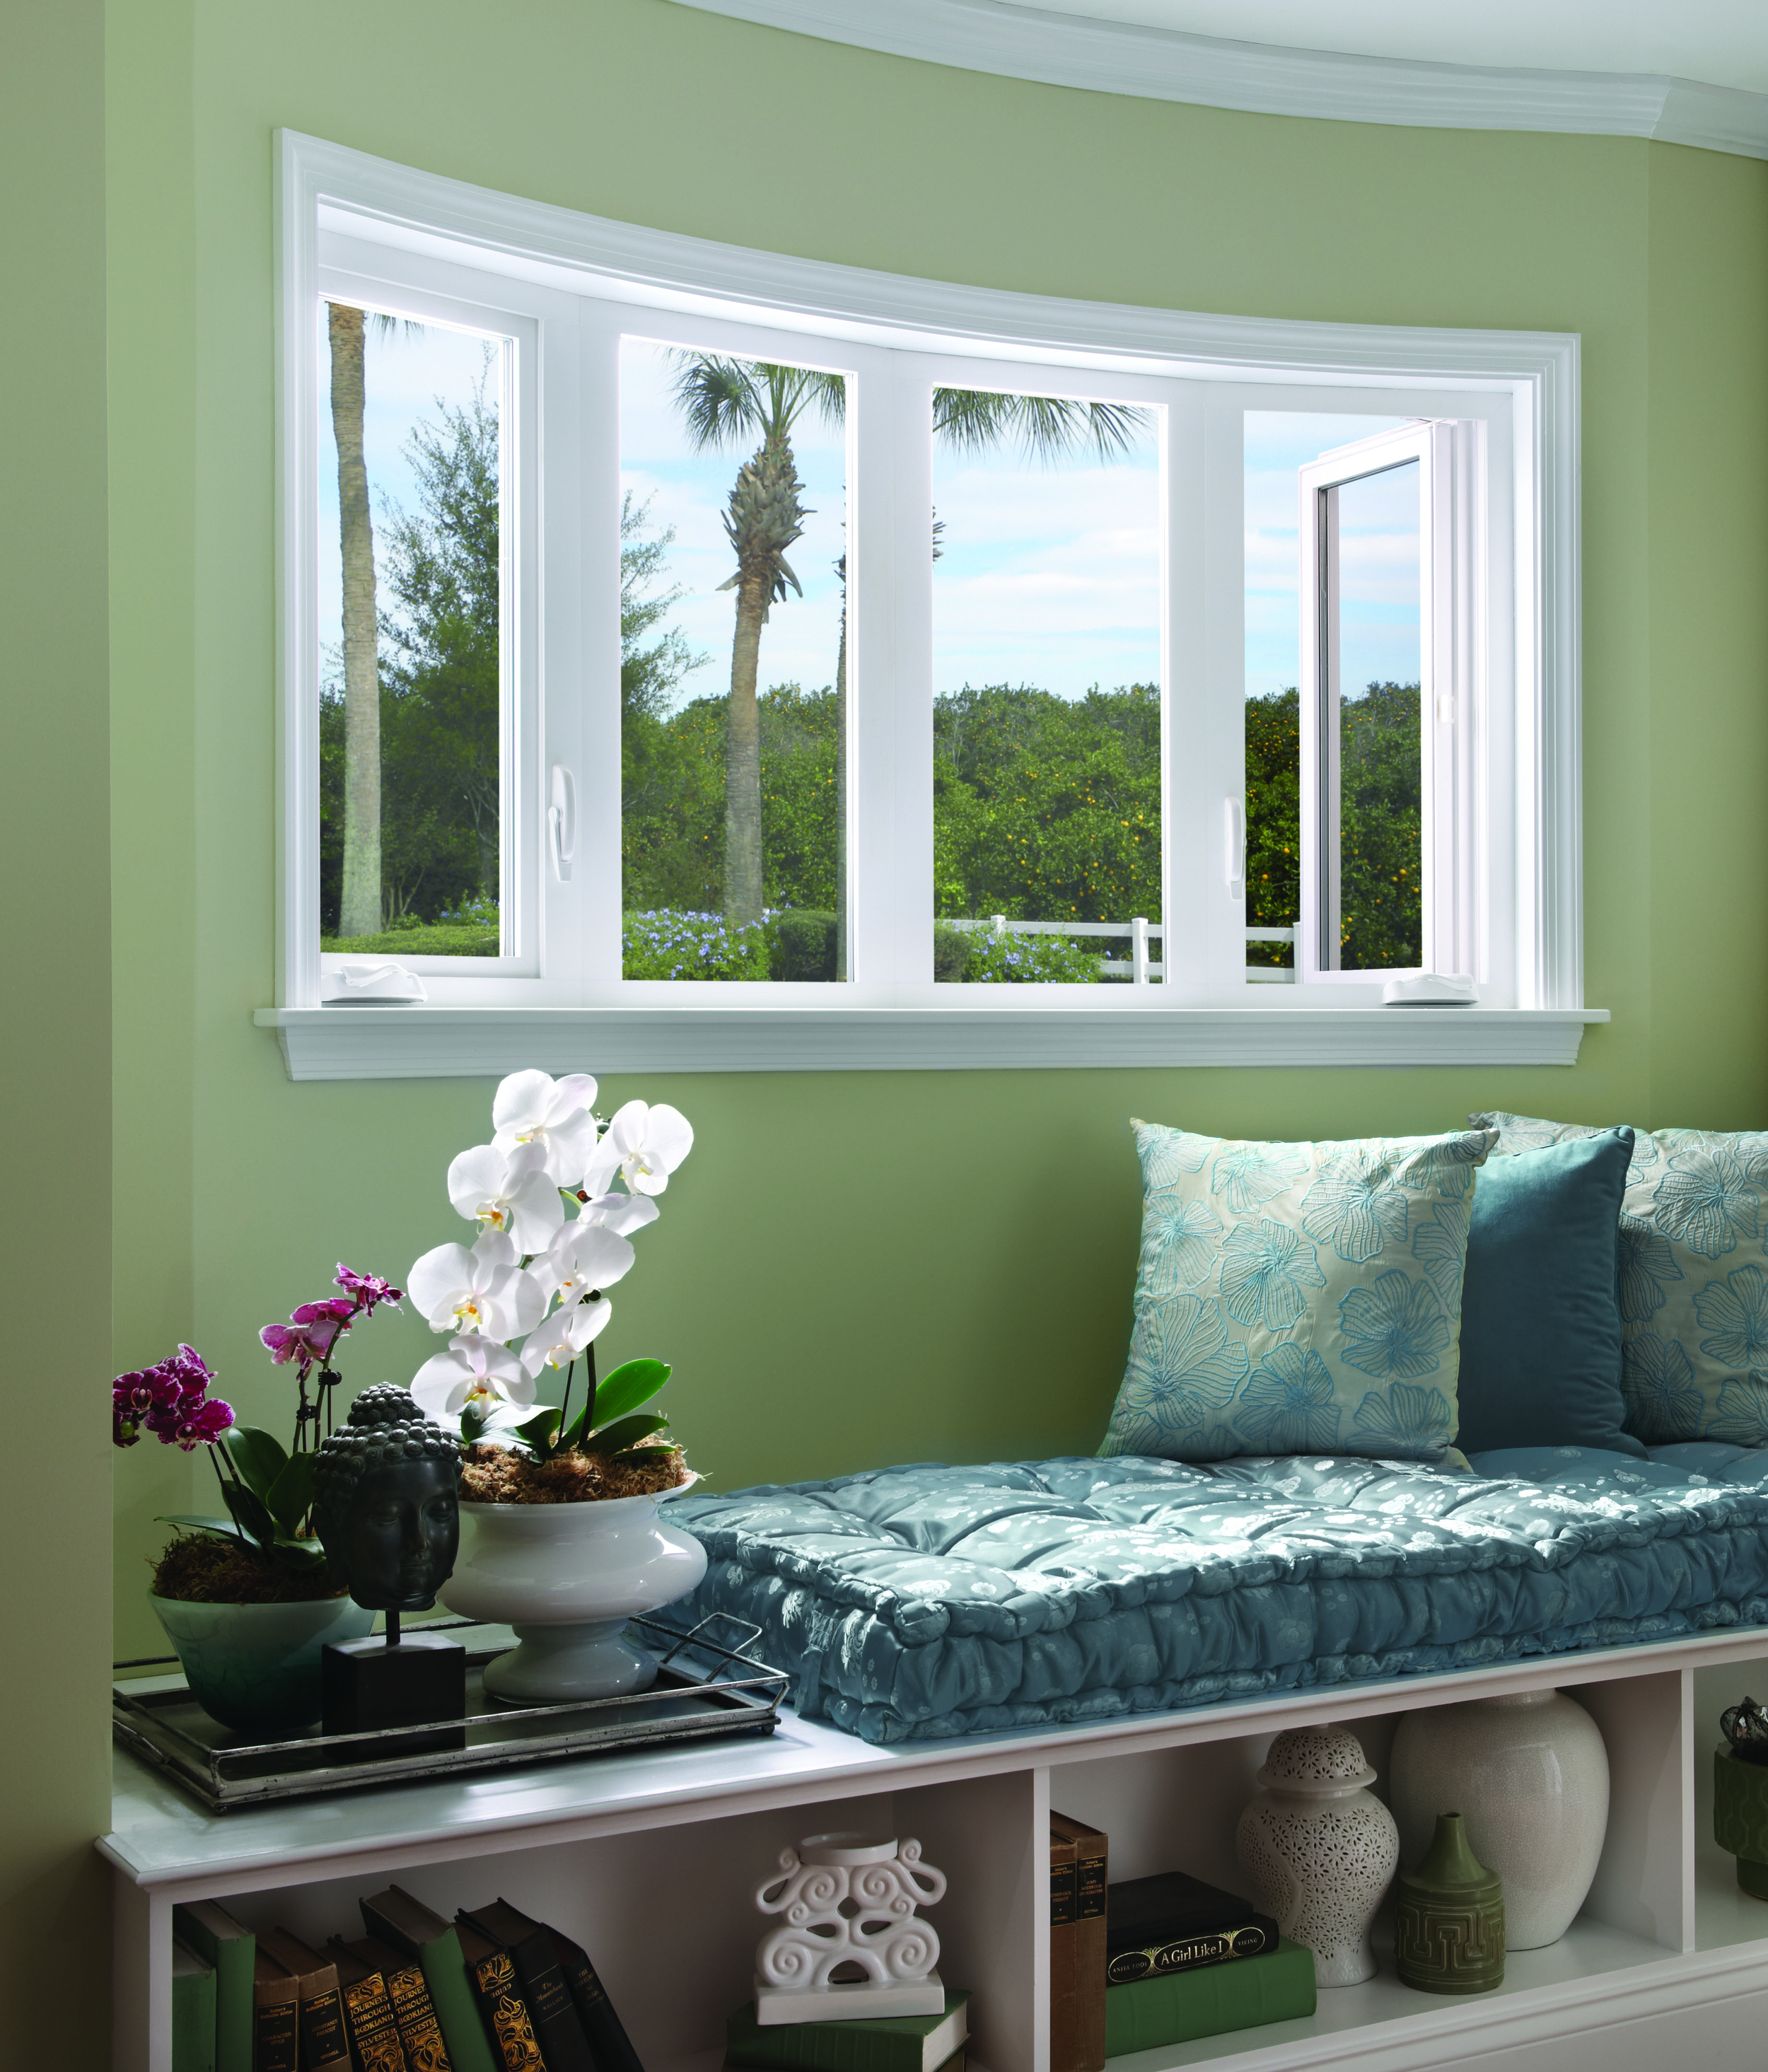 700 Casement Bow Windows Beauty Shot.jpg